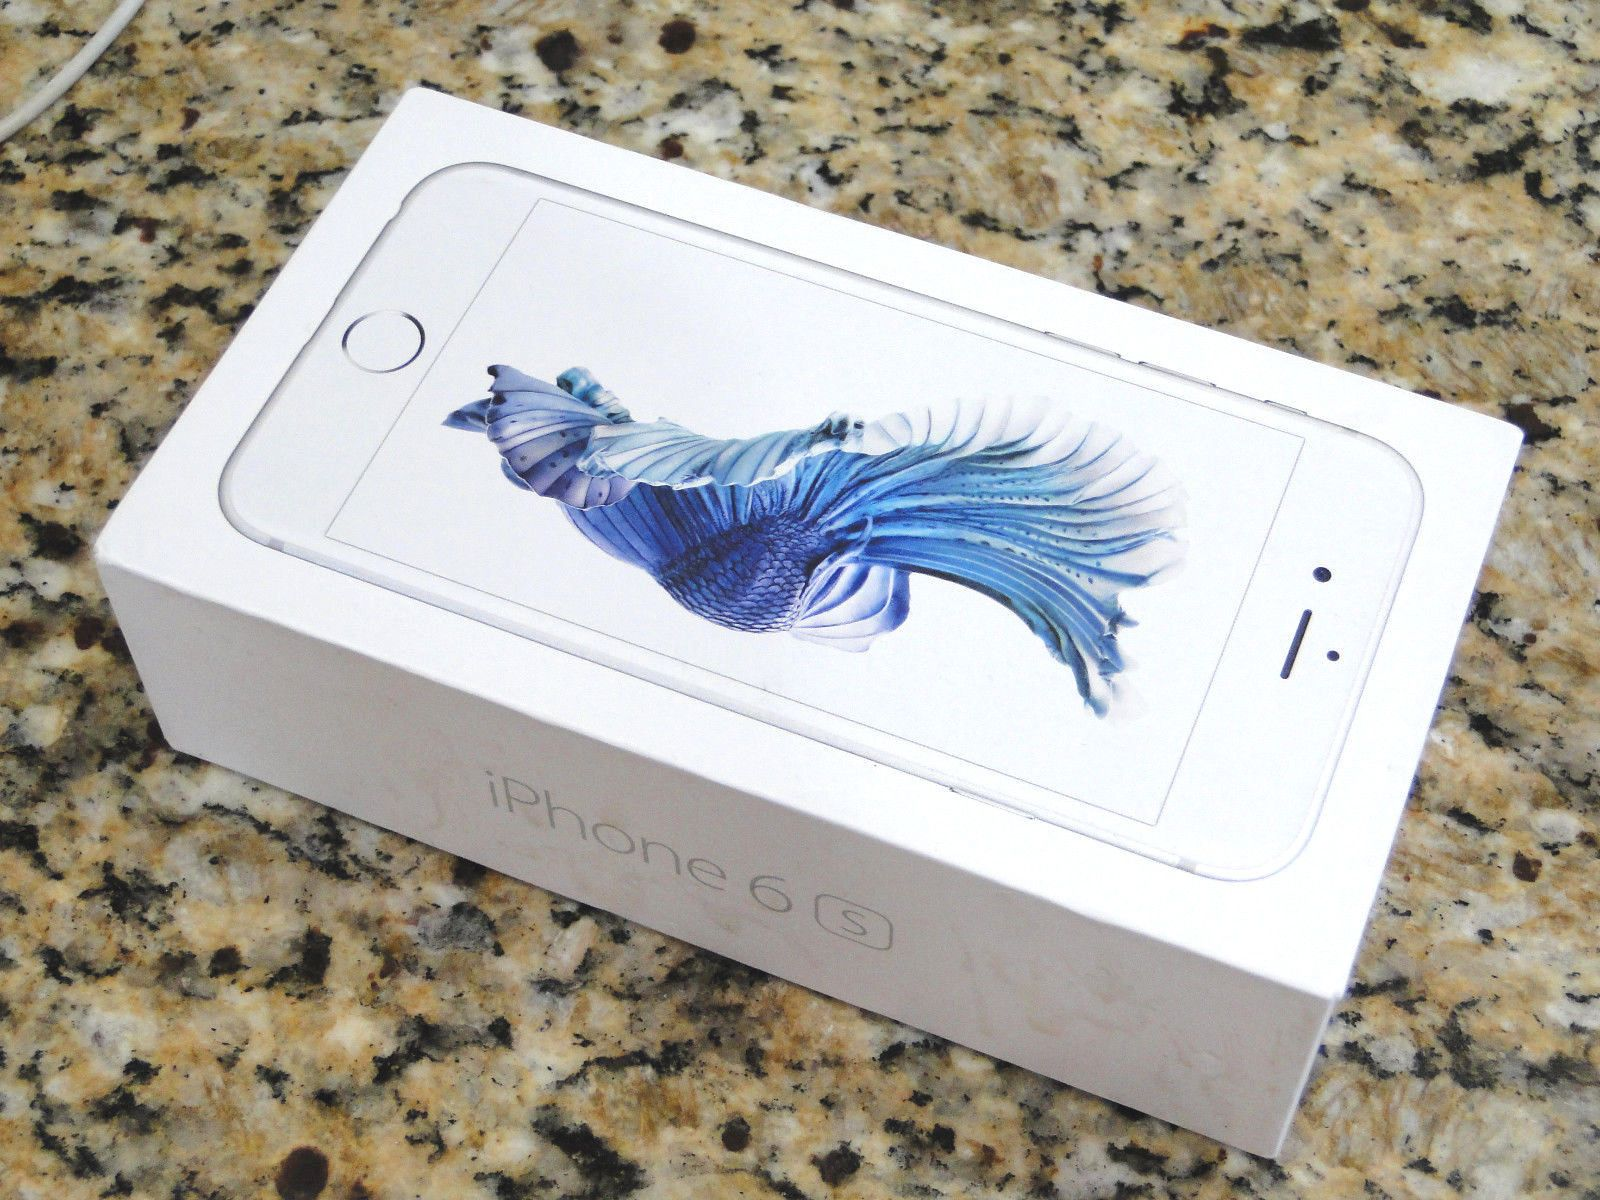 New Apple Iphone 6s Plus 128GB Silver AT&T Only CLEAN ESN